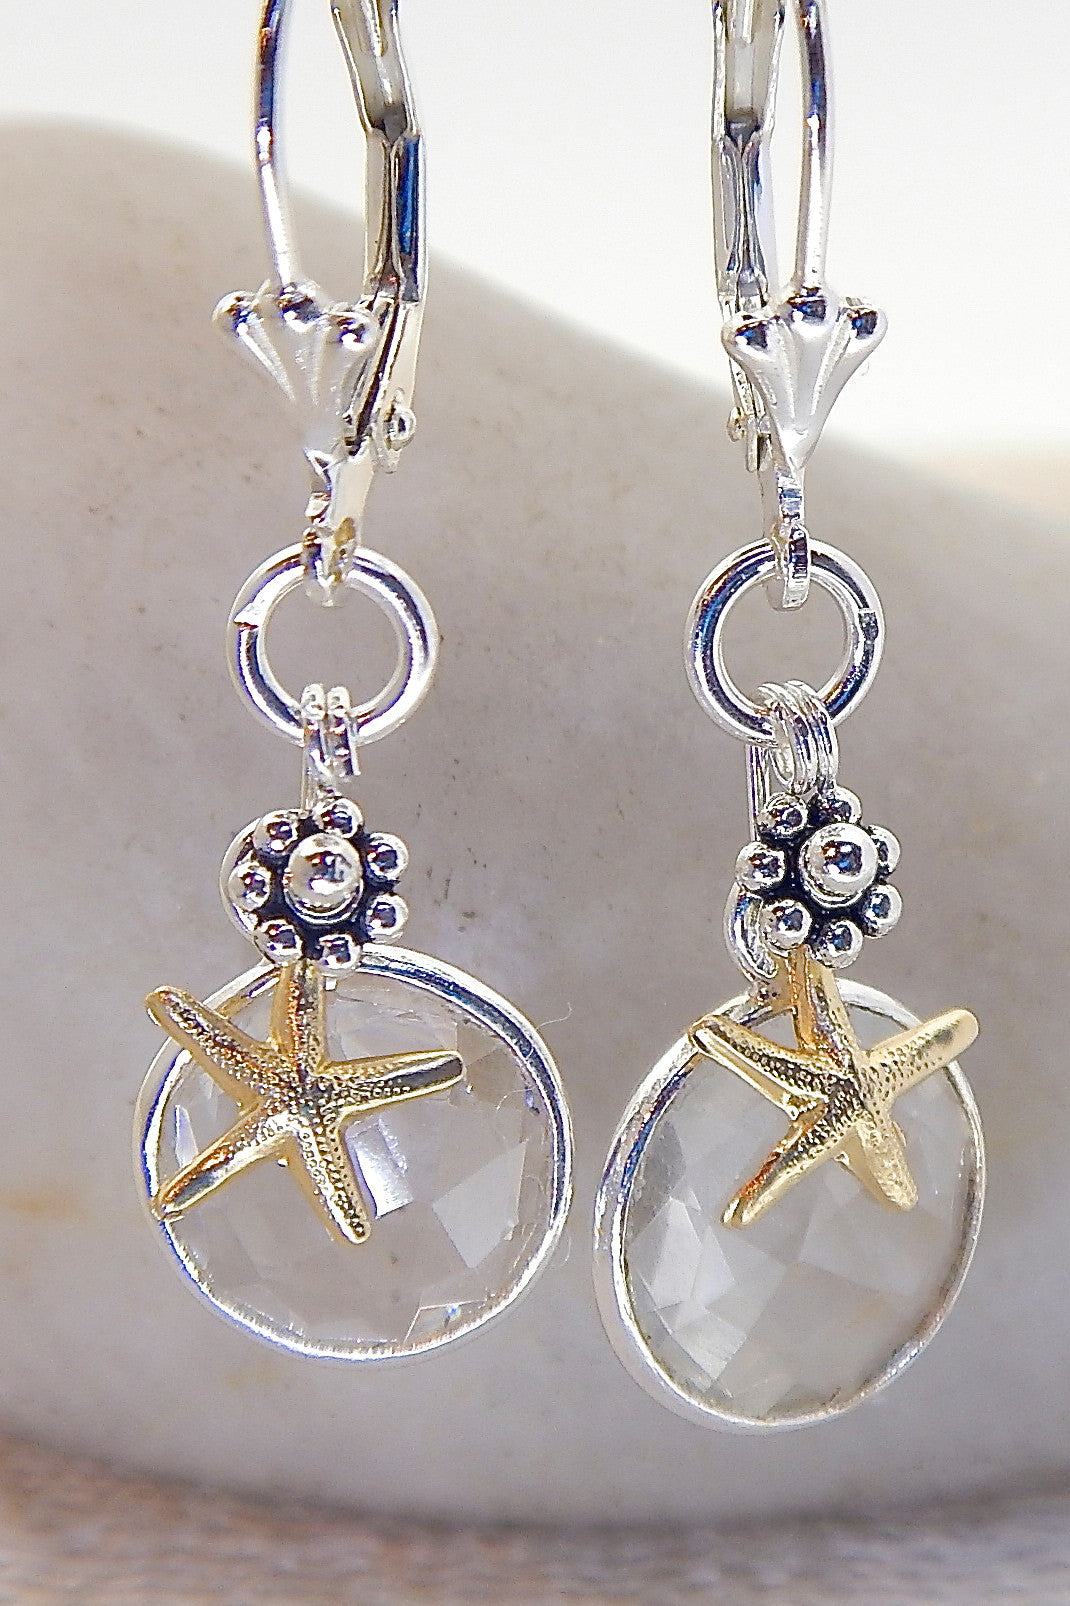 Ocean Necklace - Starfish Accented